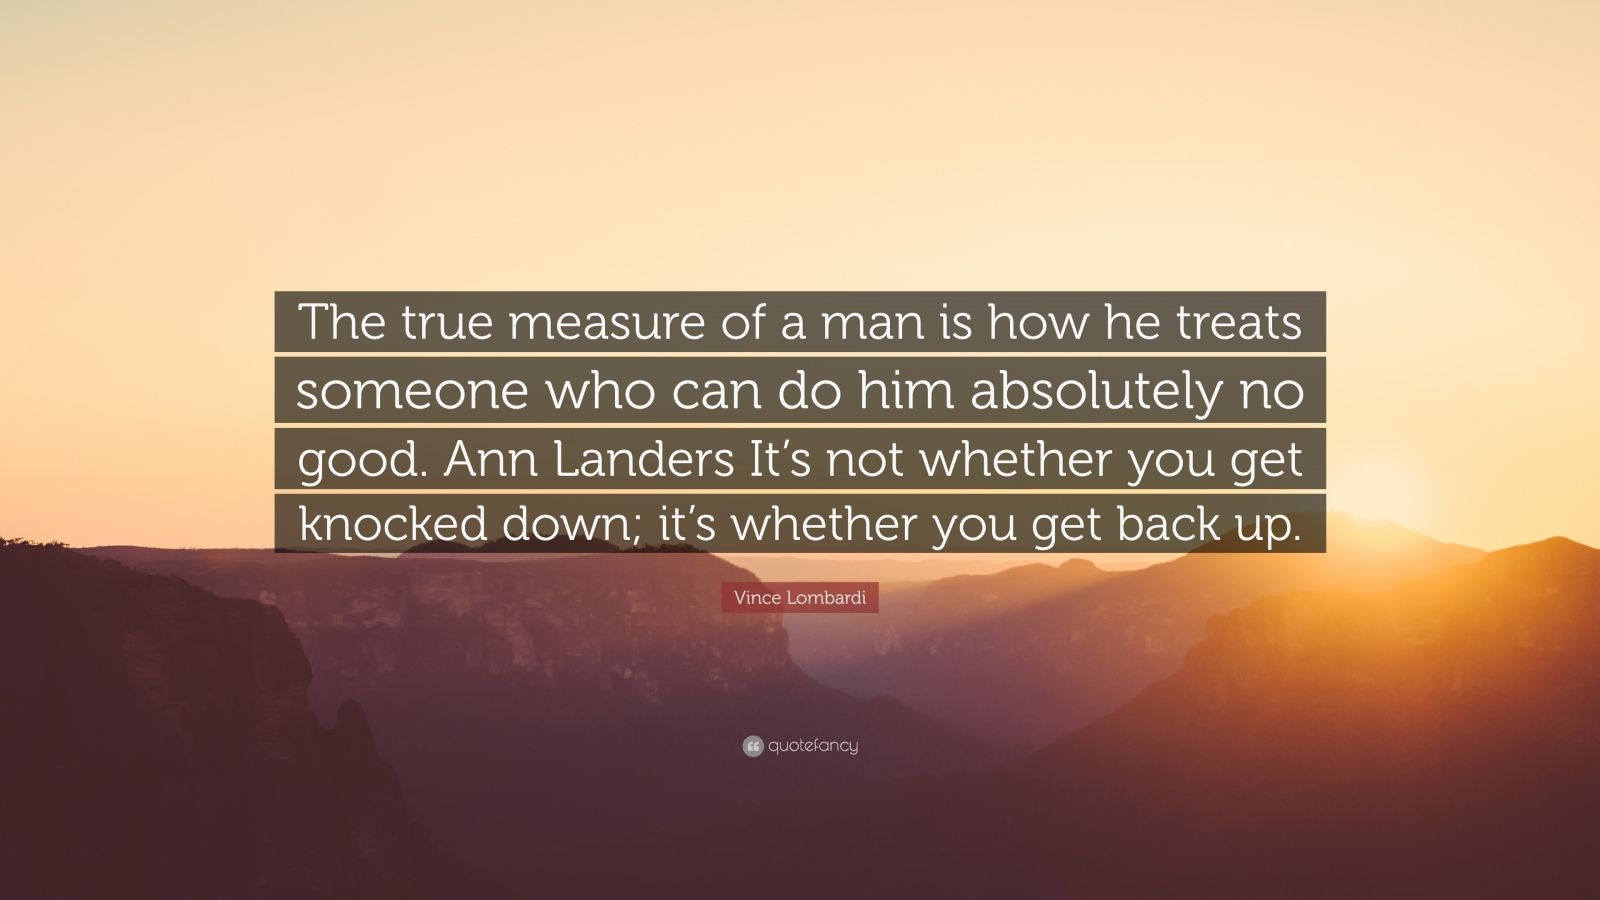 ann landers tips for leading a good life Carly goldsmith coaching 122  the true measure of a man is how he treats someone who can do him absolutely no good - ann landers  leading isn't about.